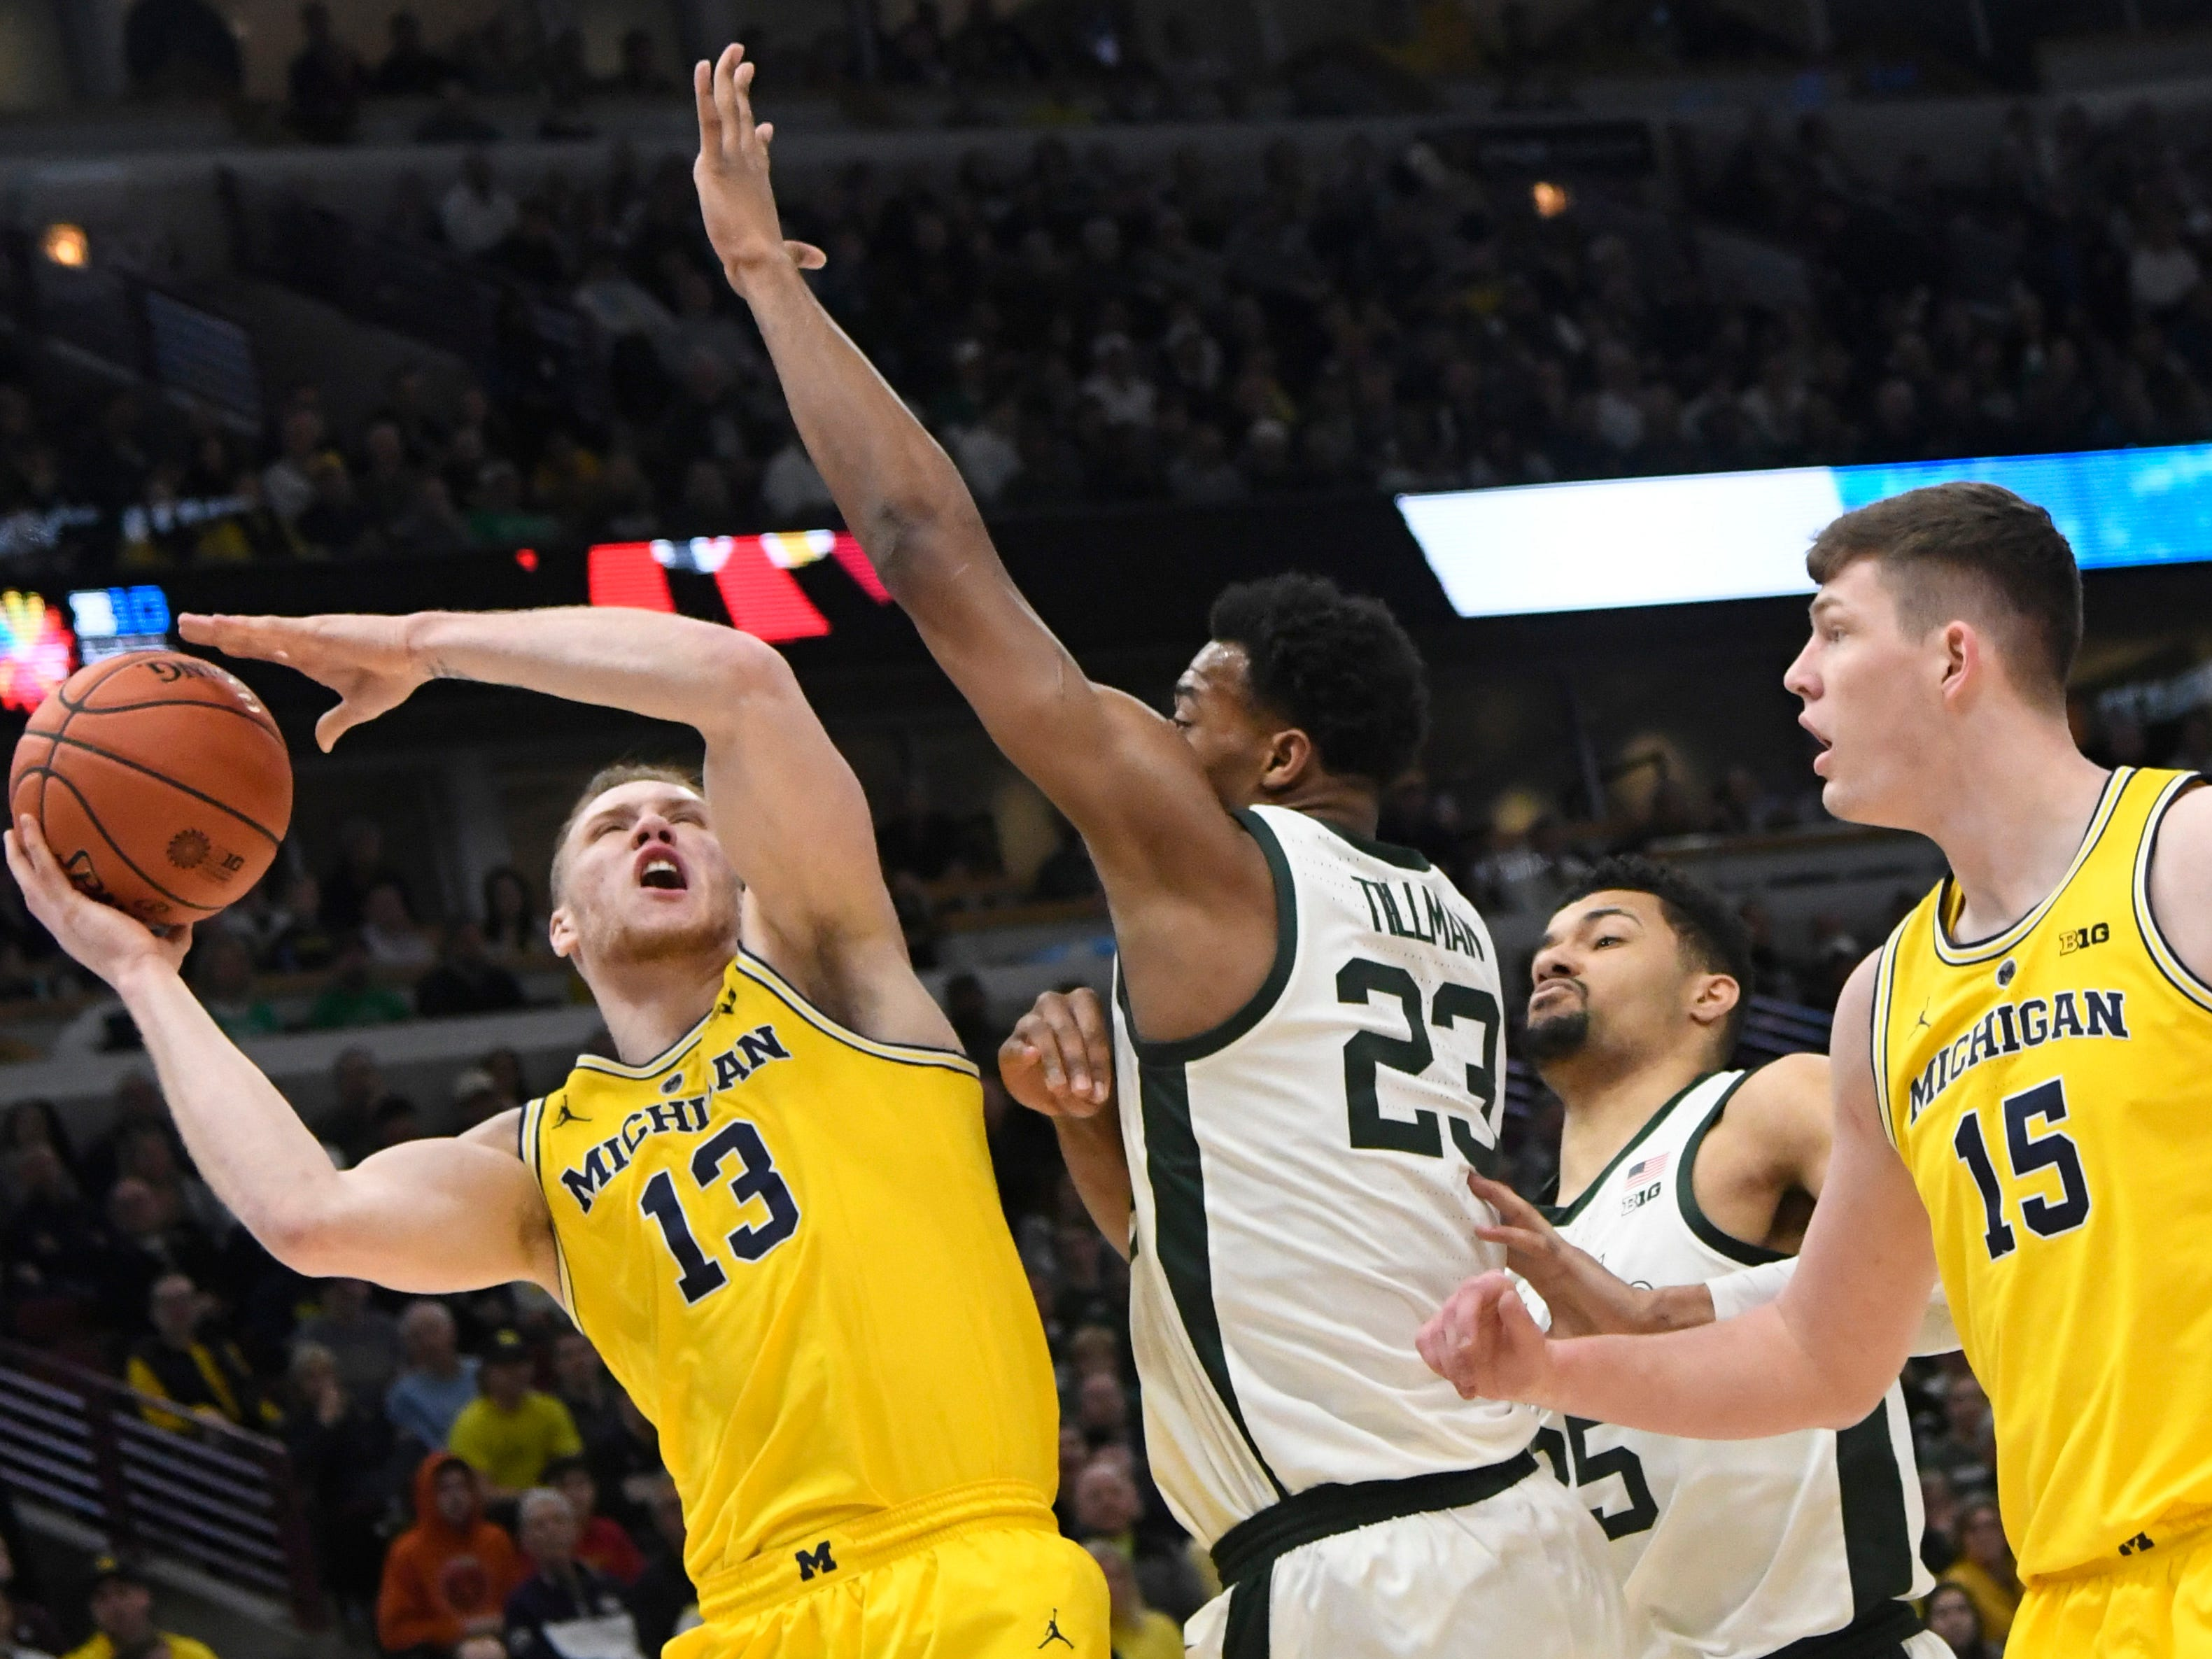 Michigan Wolverines forward Ignas Brazdeikis (13) Michigan State Spartans forward Xavier Tillman (23) during the first half in the Big Ten conference tournament at United Center.